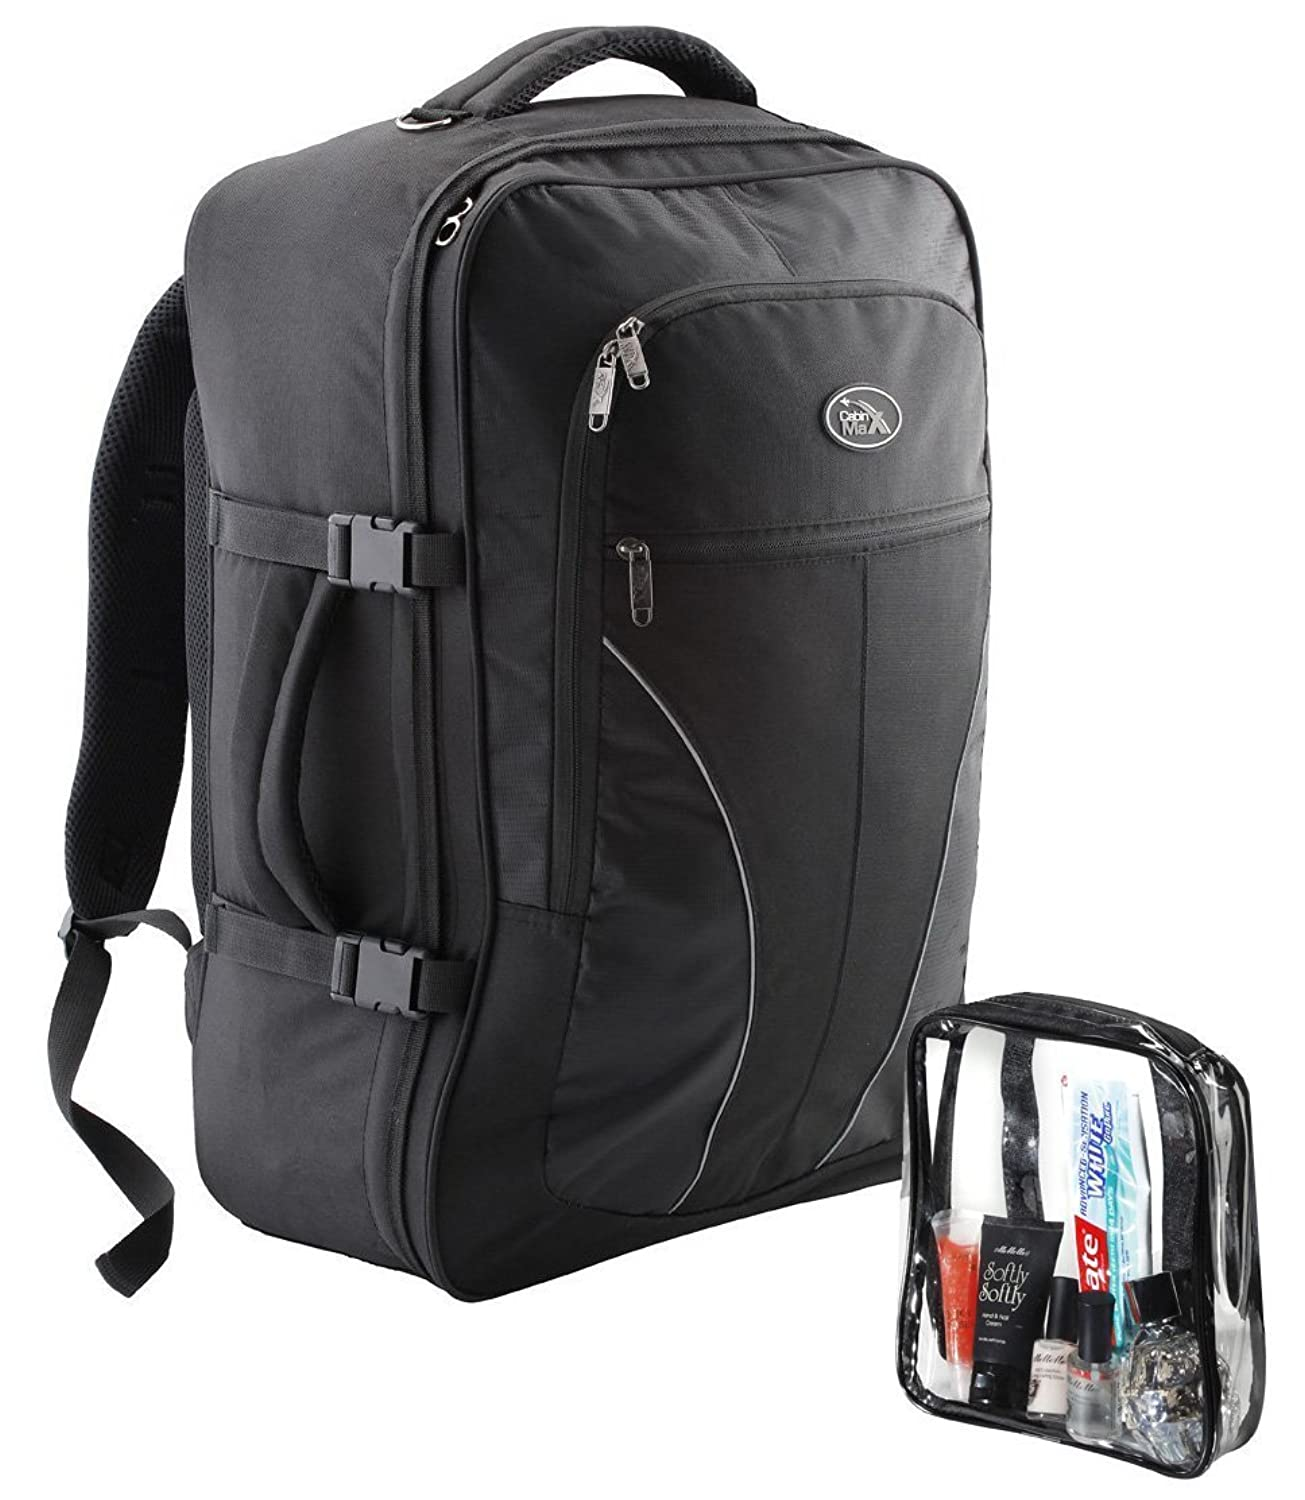 bags reductions travel four cabin further bag cabins woodstock weekend scattered wheel